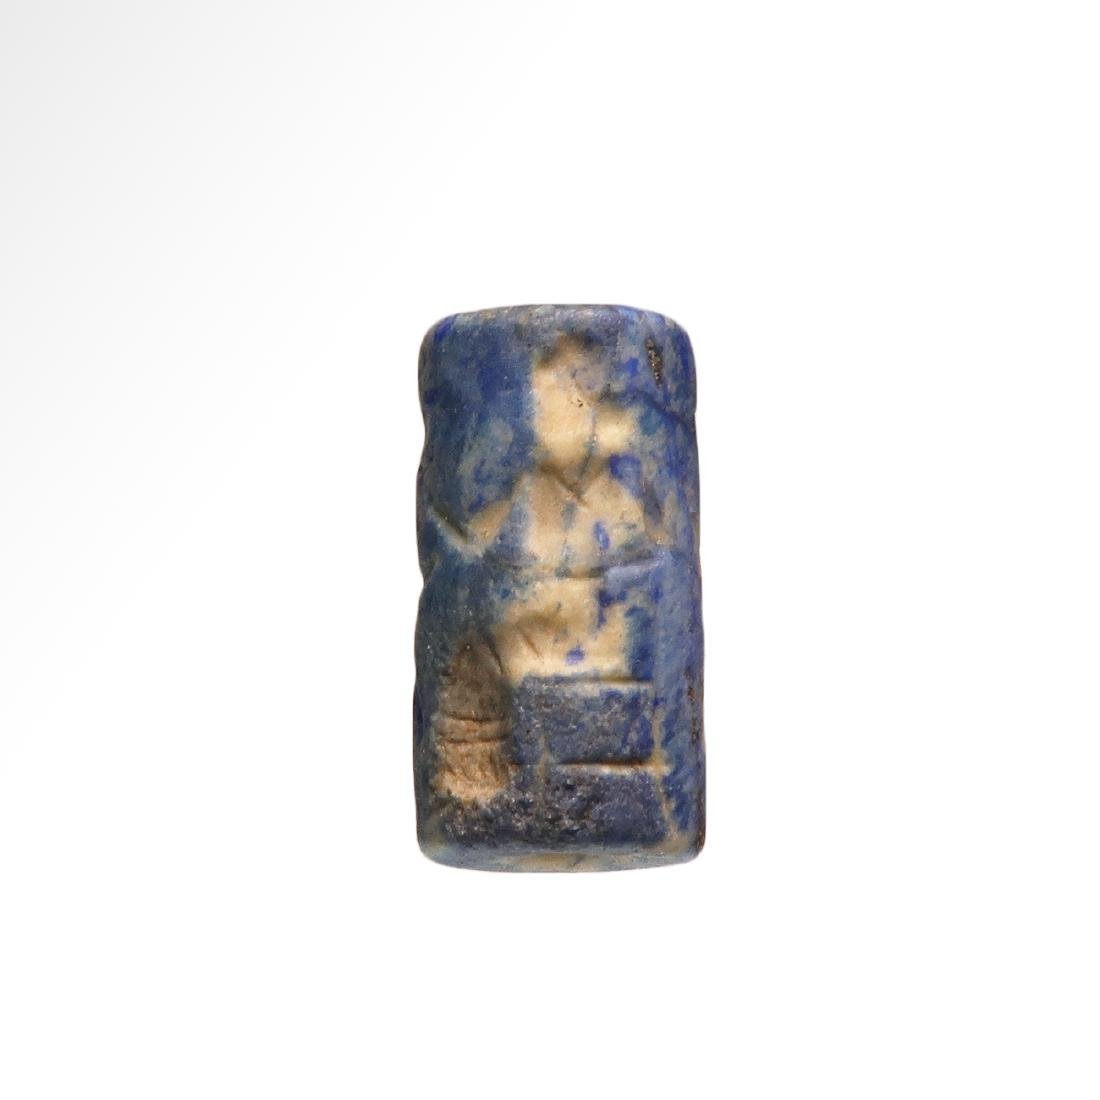 Assyrian Cylinder Seal, Deity and Winged Animals - 2